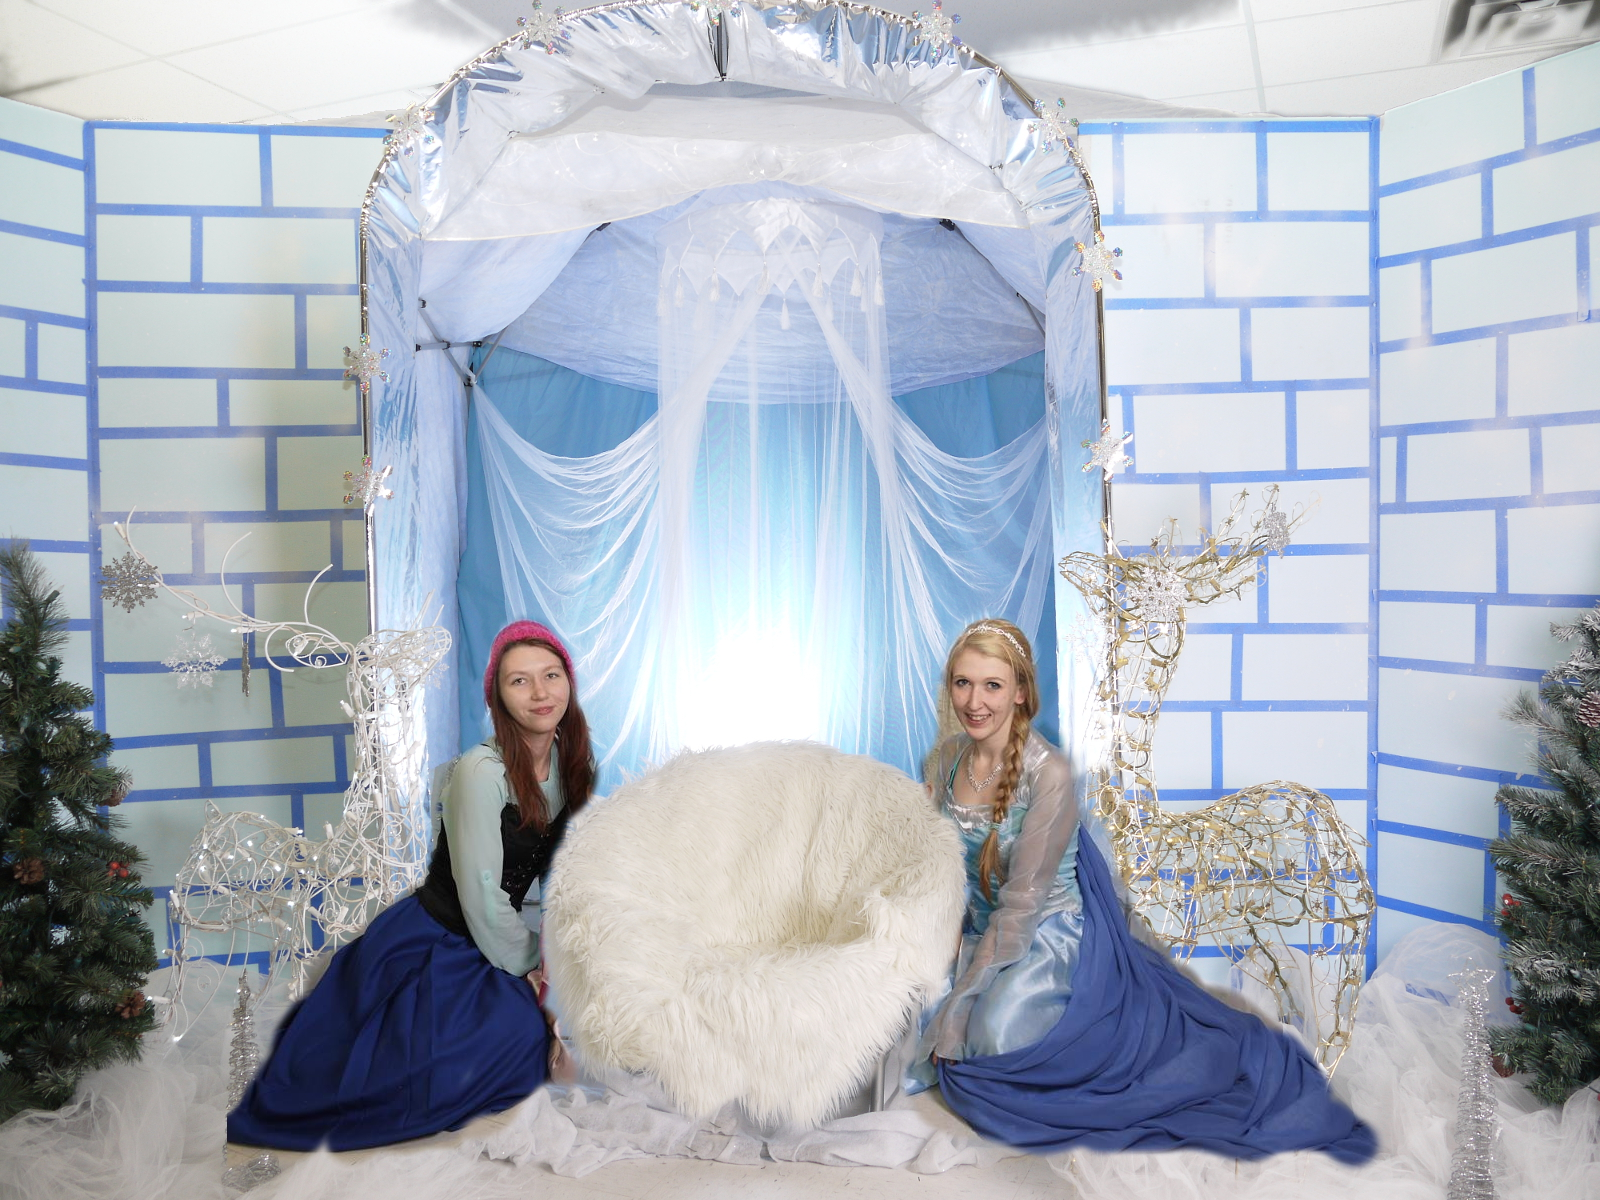 icecastleprincesses2